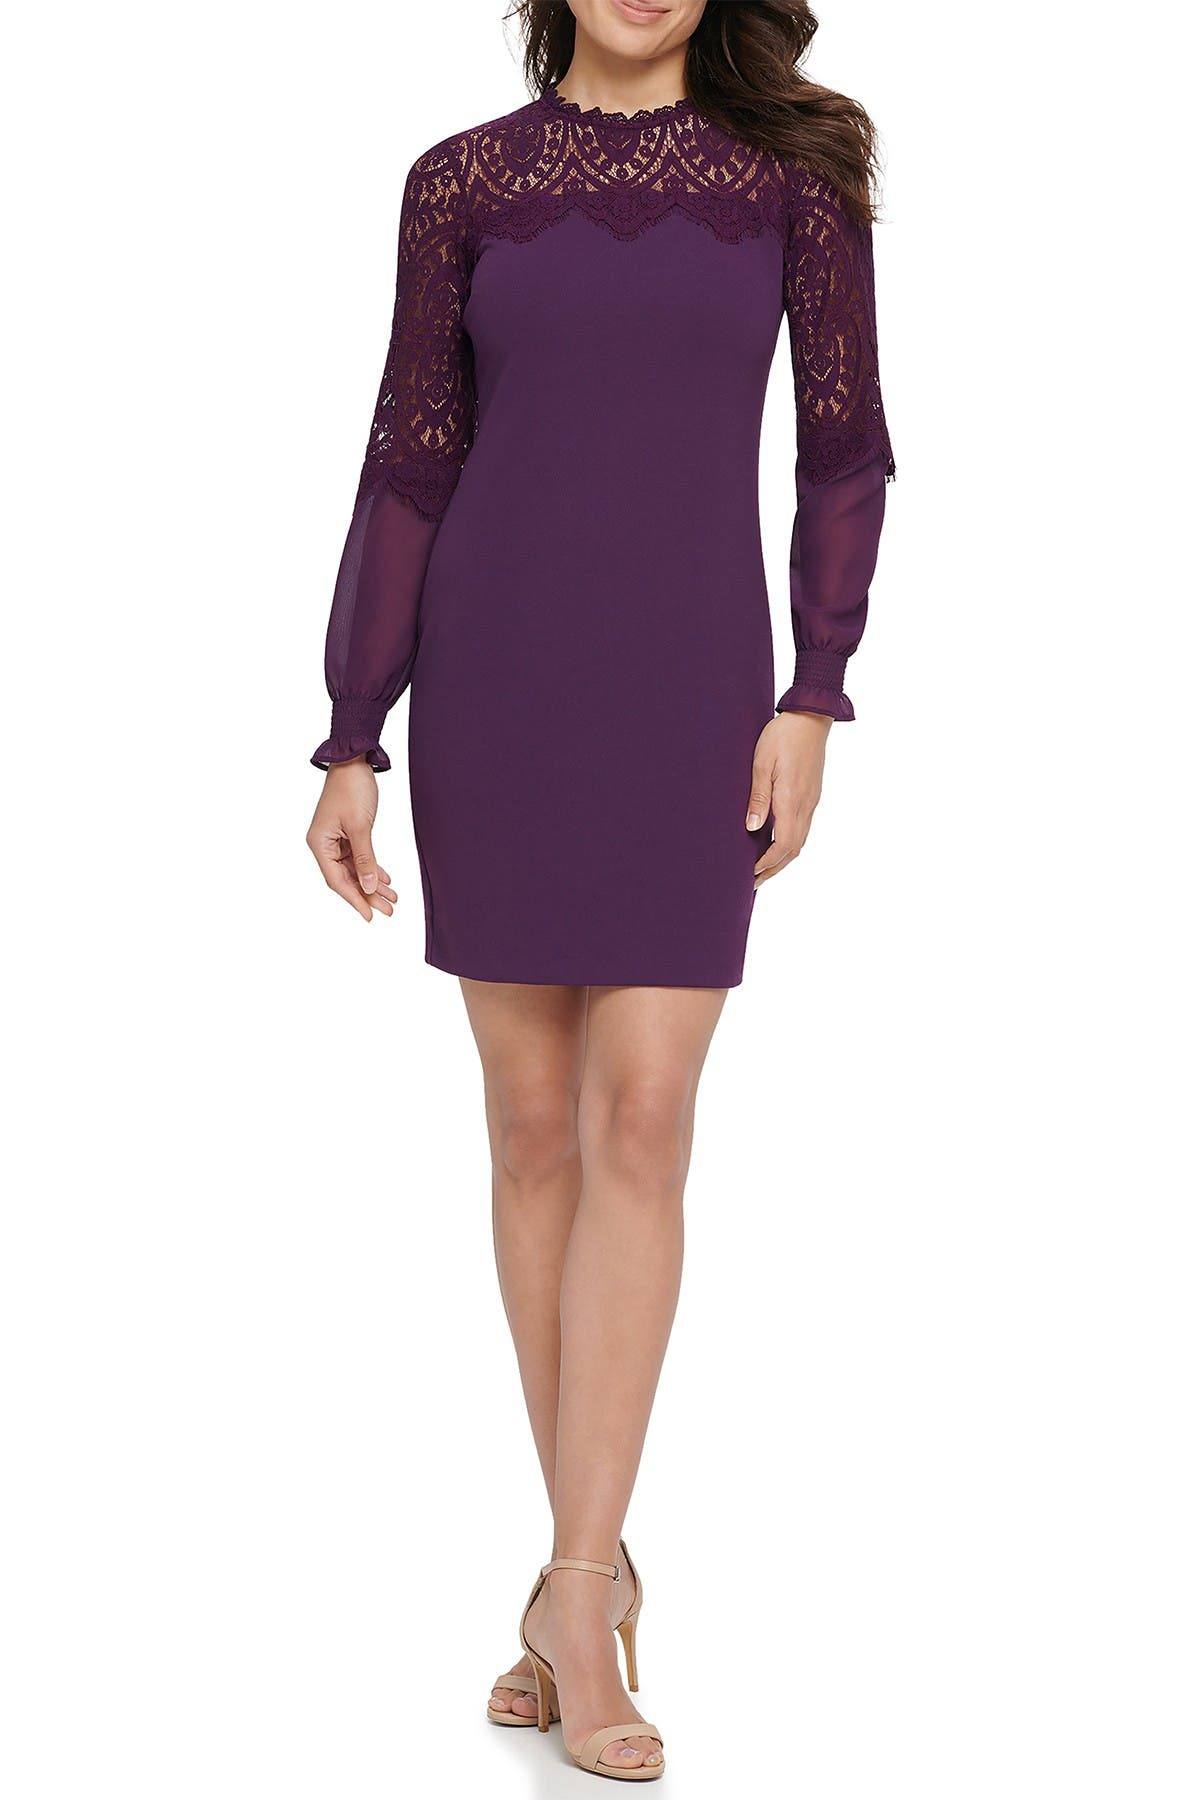 Image of Kensie Scalloped Lace Long Sleeve Sheath Dress